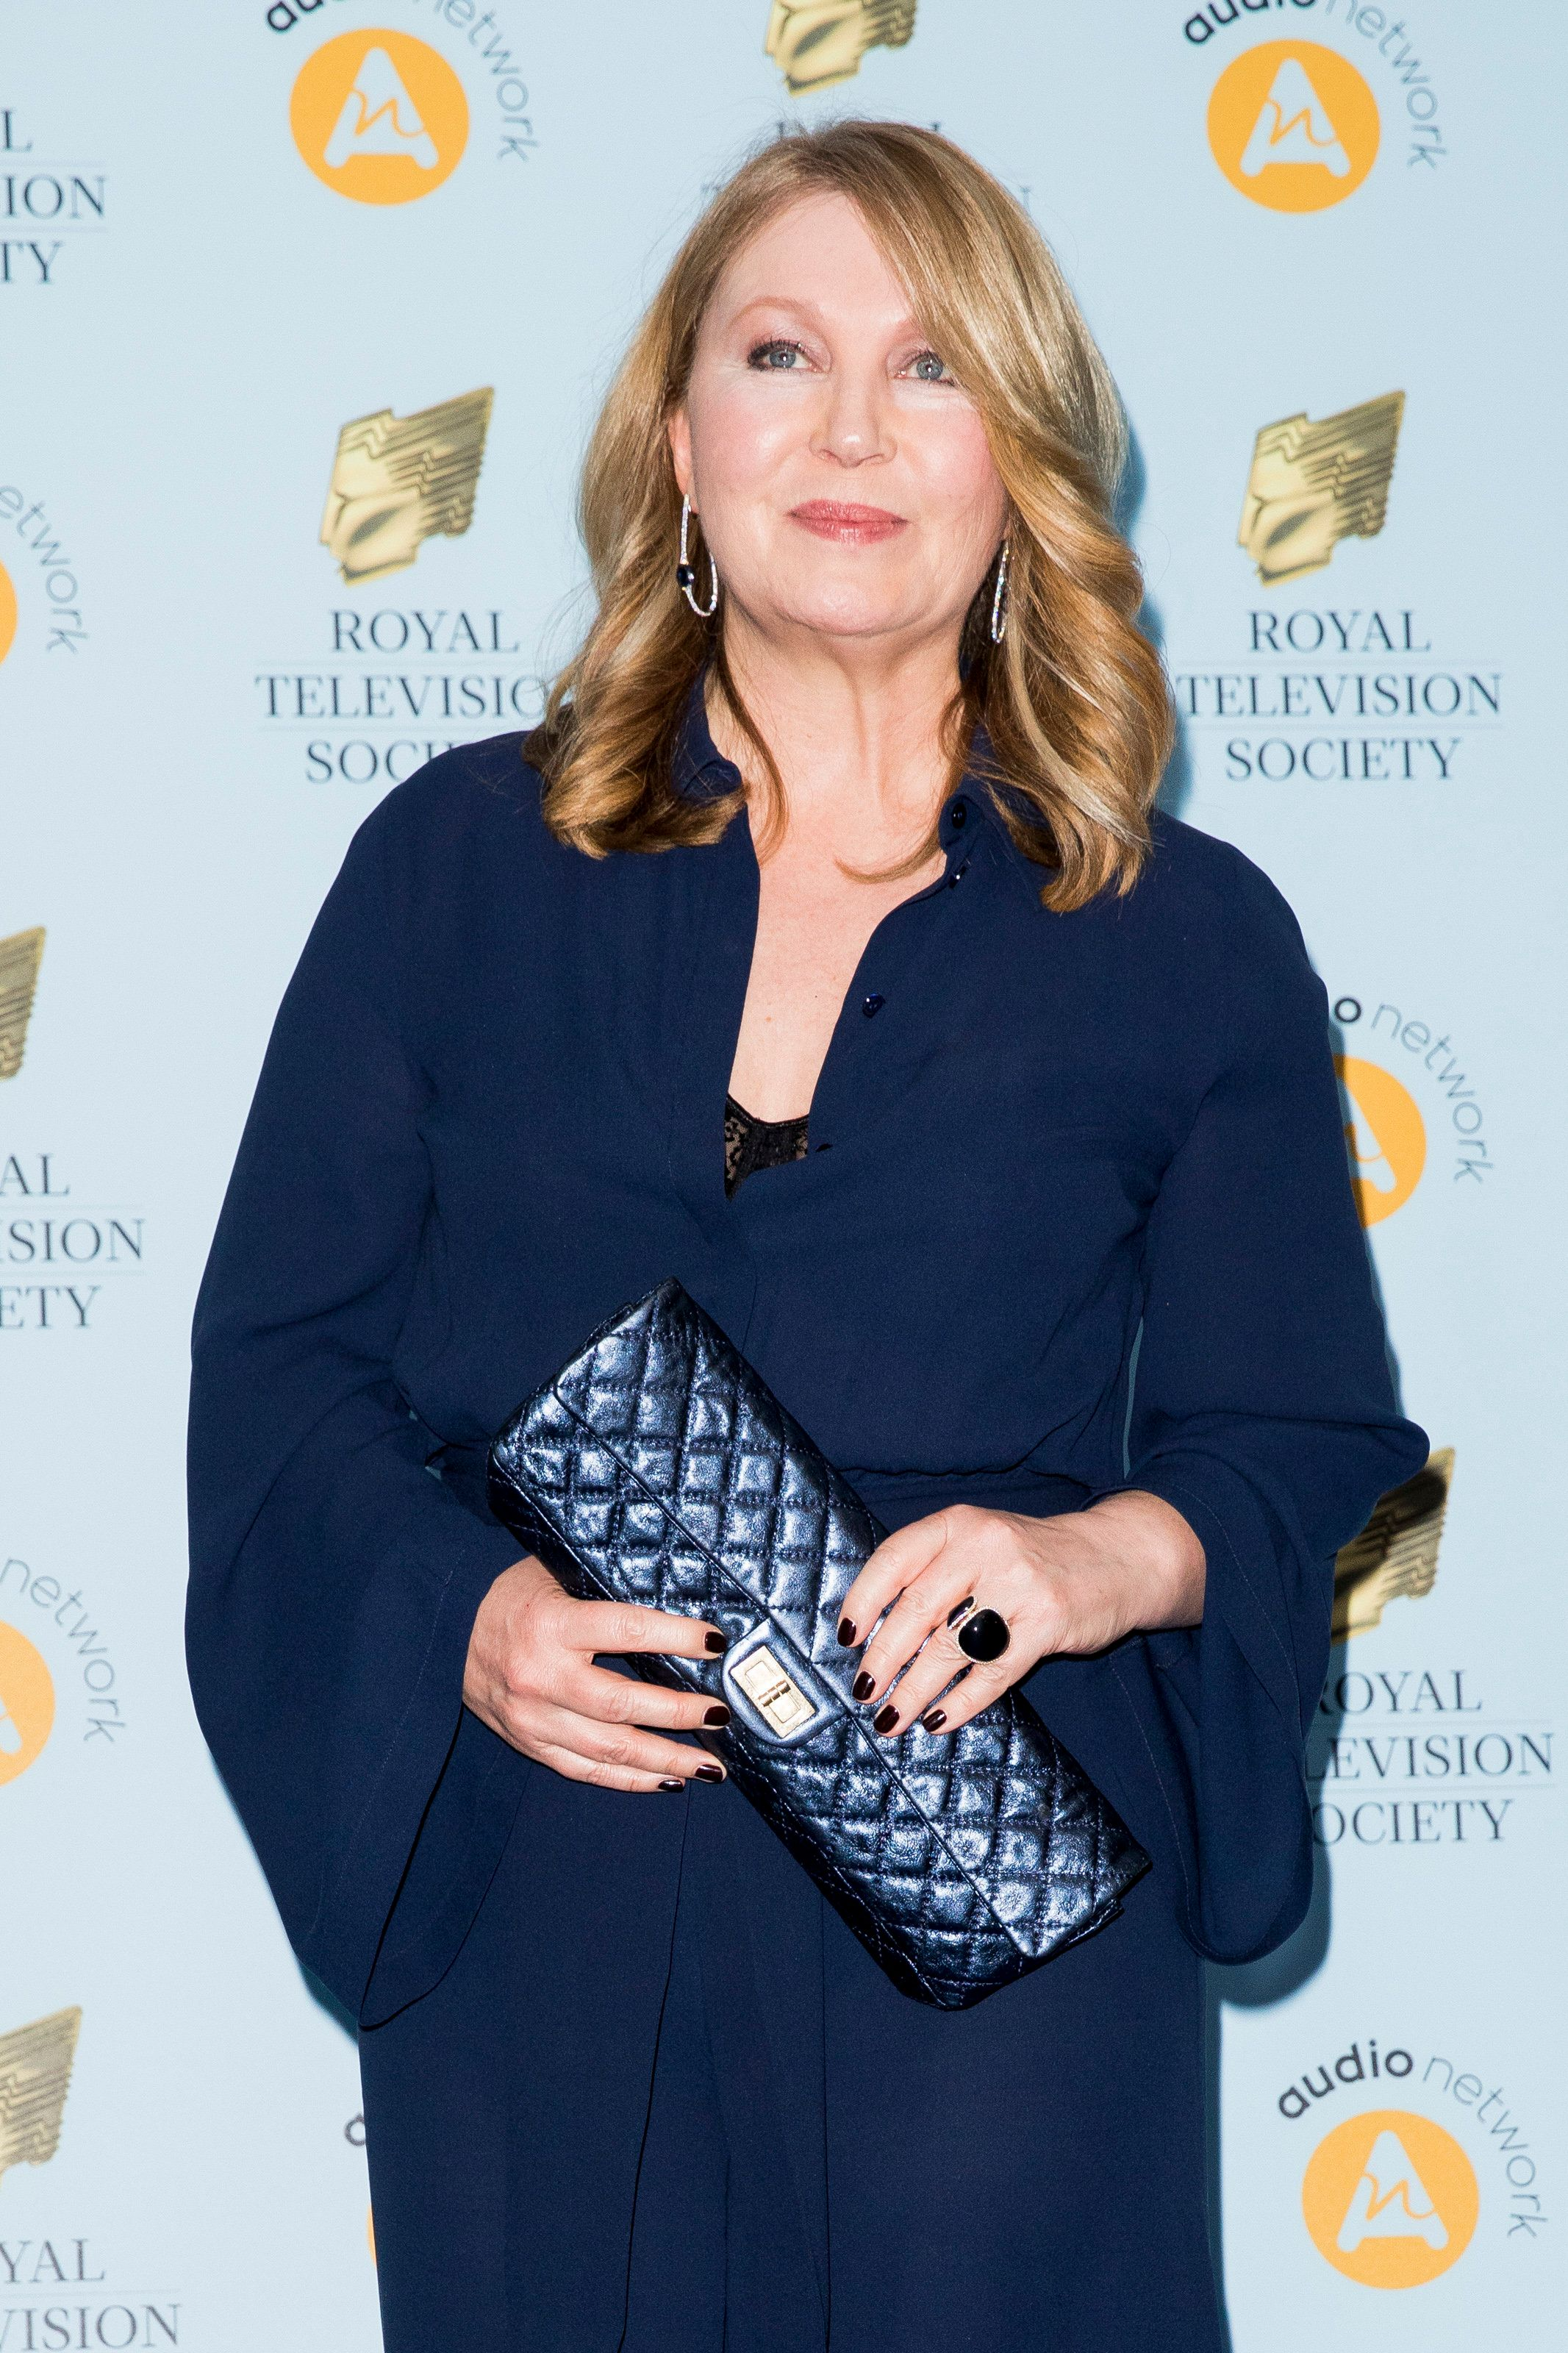 Desert Island Discs' Kirsty Young To Take A Break From Show While She Battles Fibromyalgia